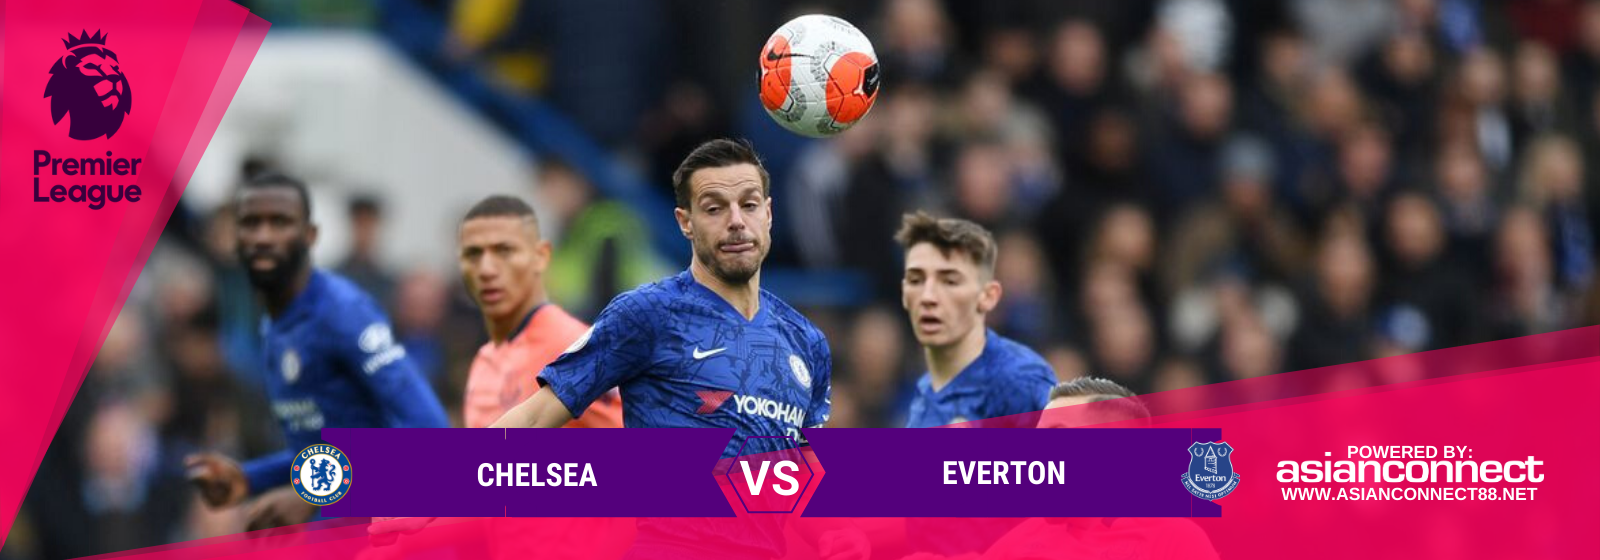 Asianconnect: Chelsea vs Everton Odds for March 08, 2020